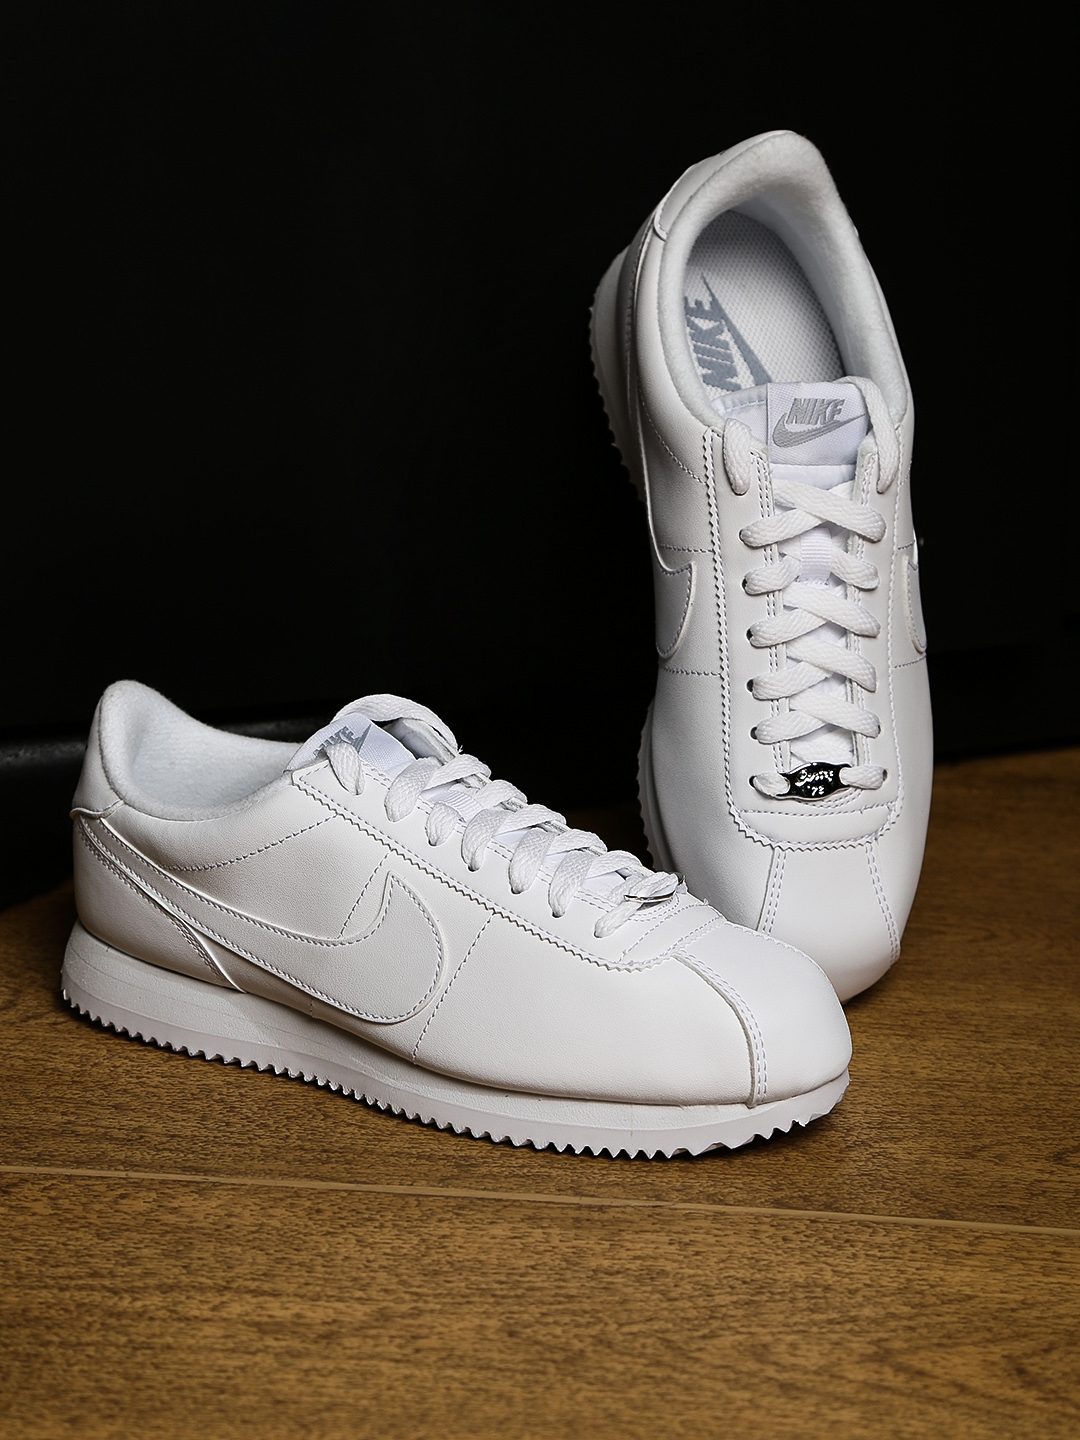 552d203d6284 Buy Nike Men White Cortez Basic Leather Sneakers - Casual Shoes for ...